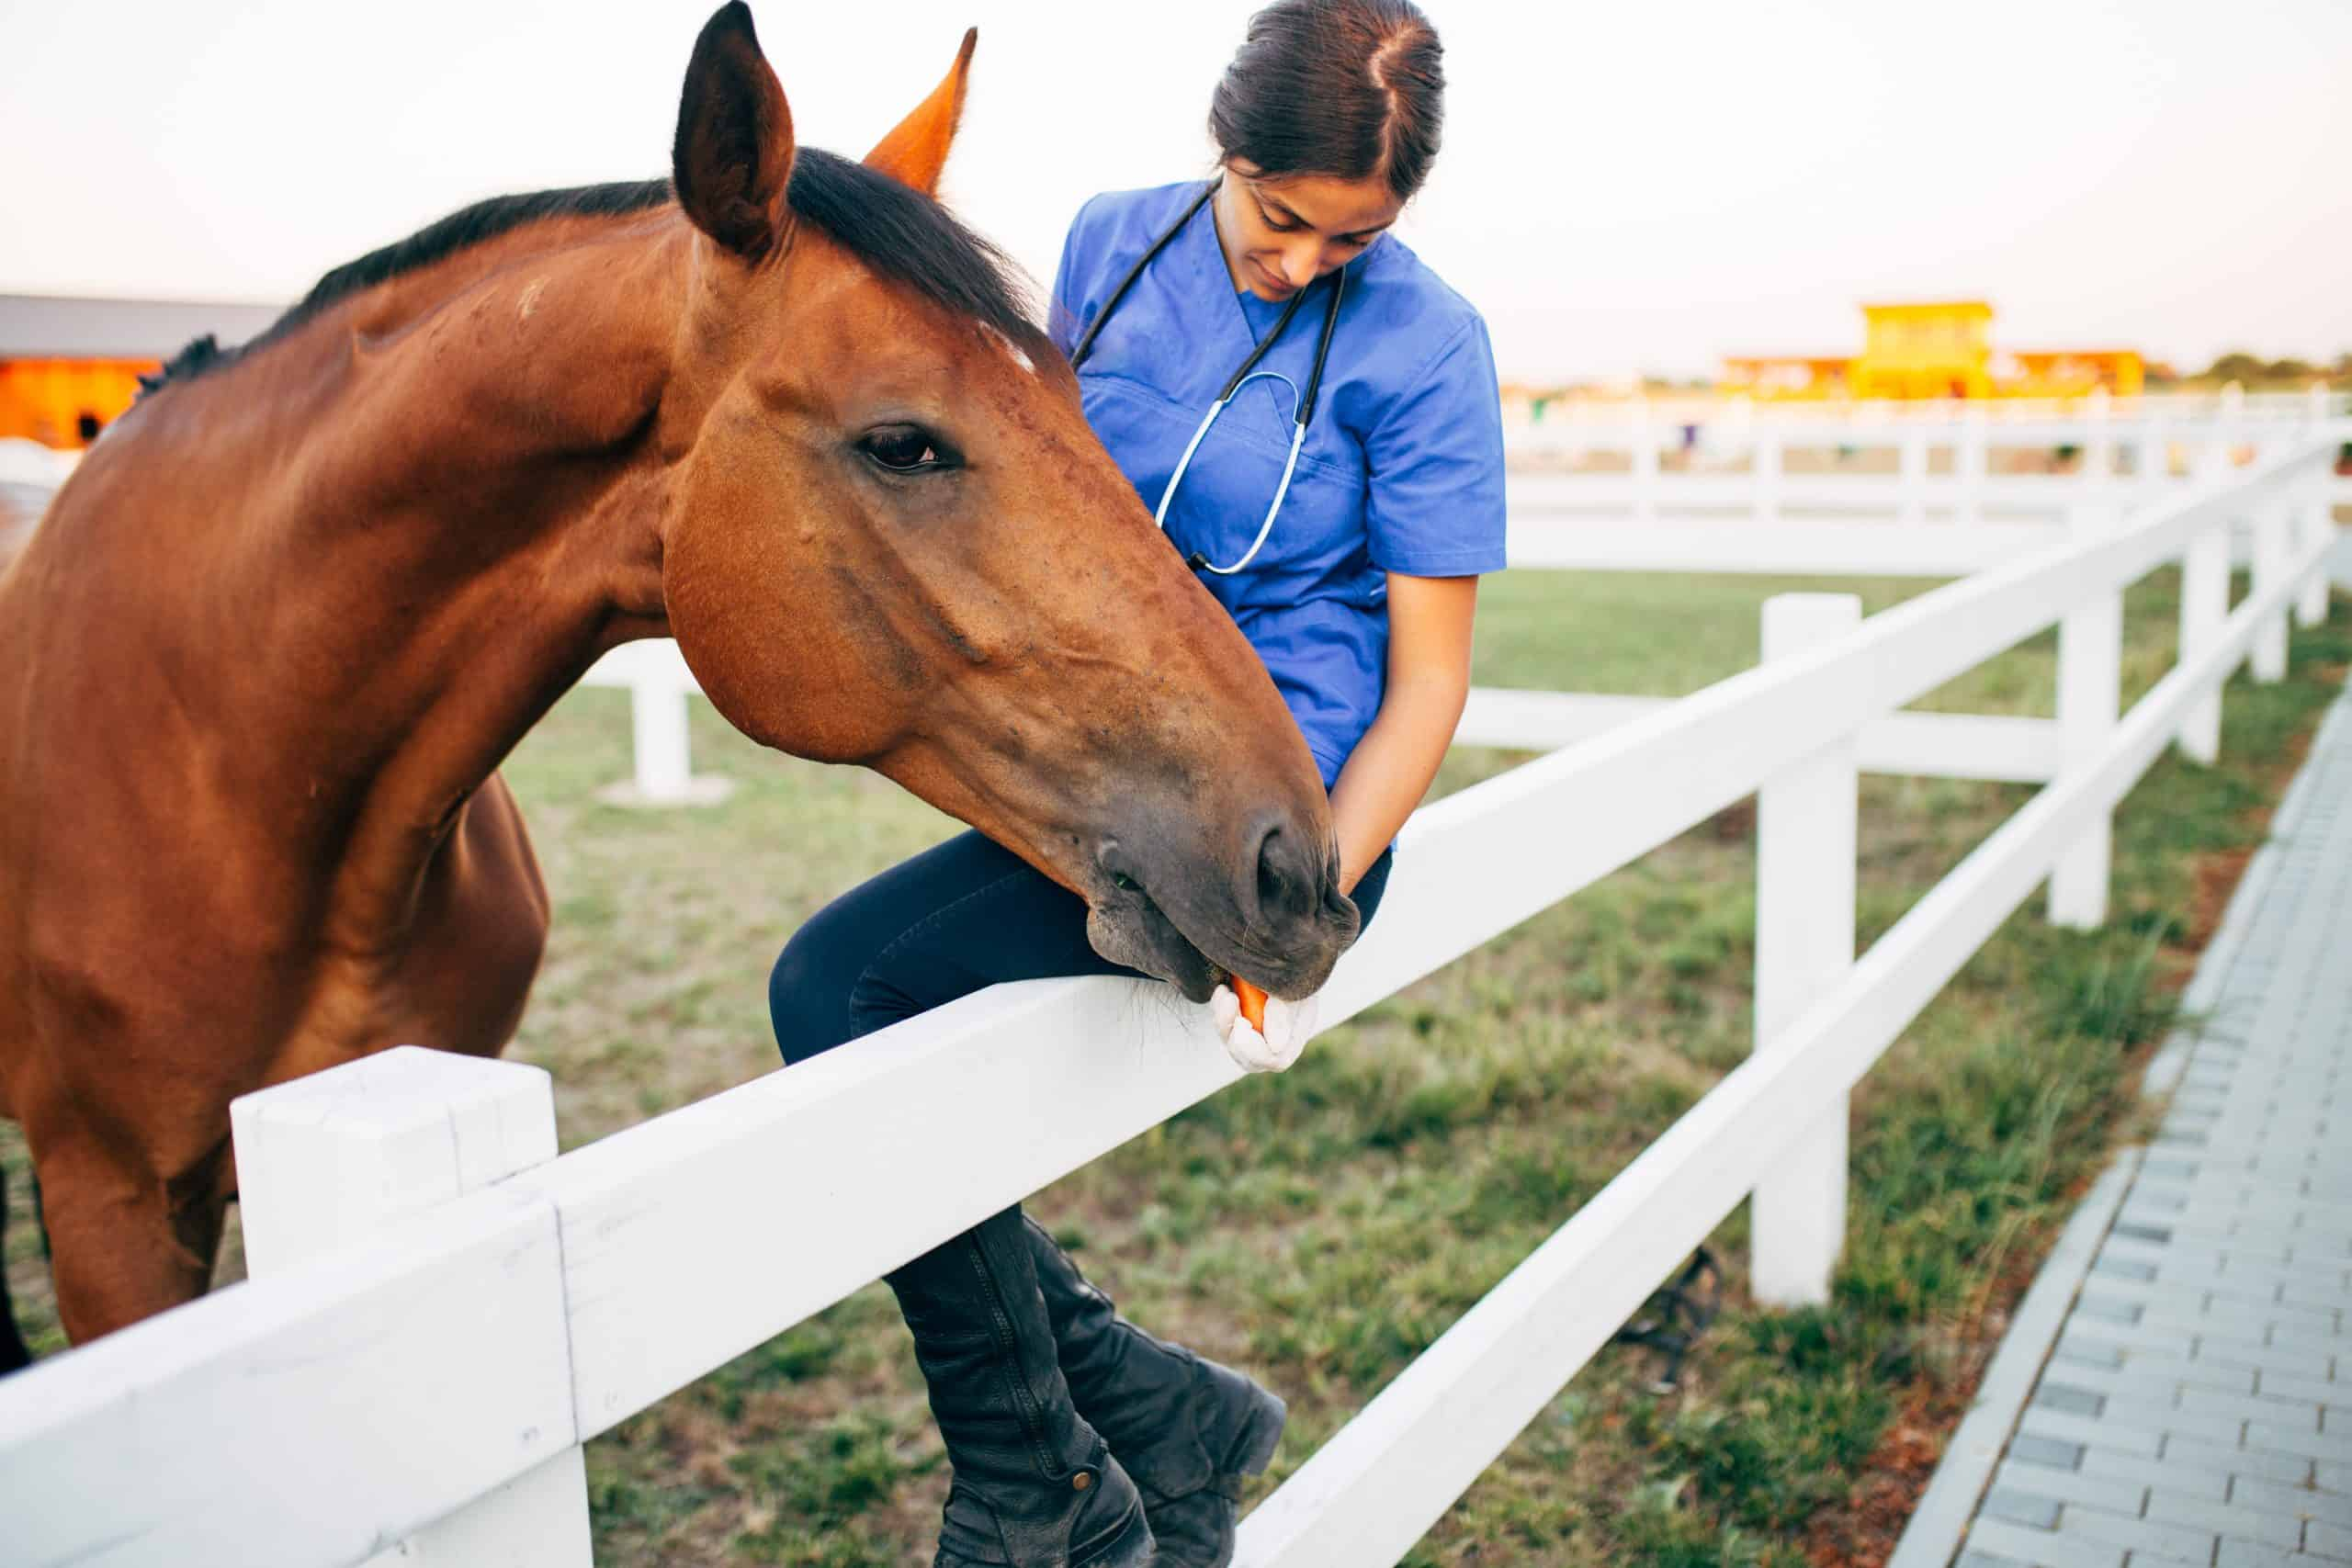 horse owner first aid skills taking pulse